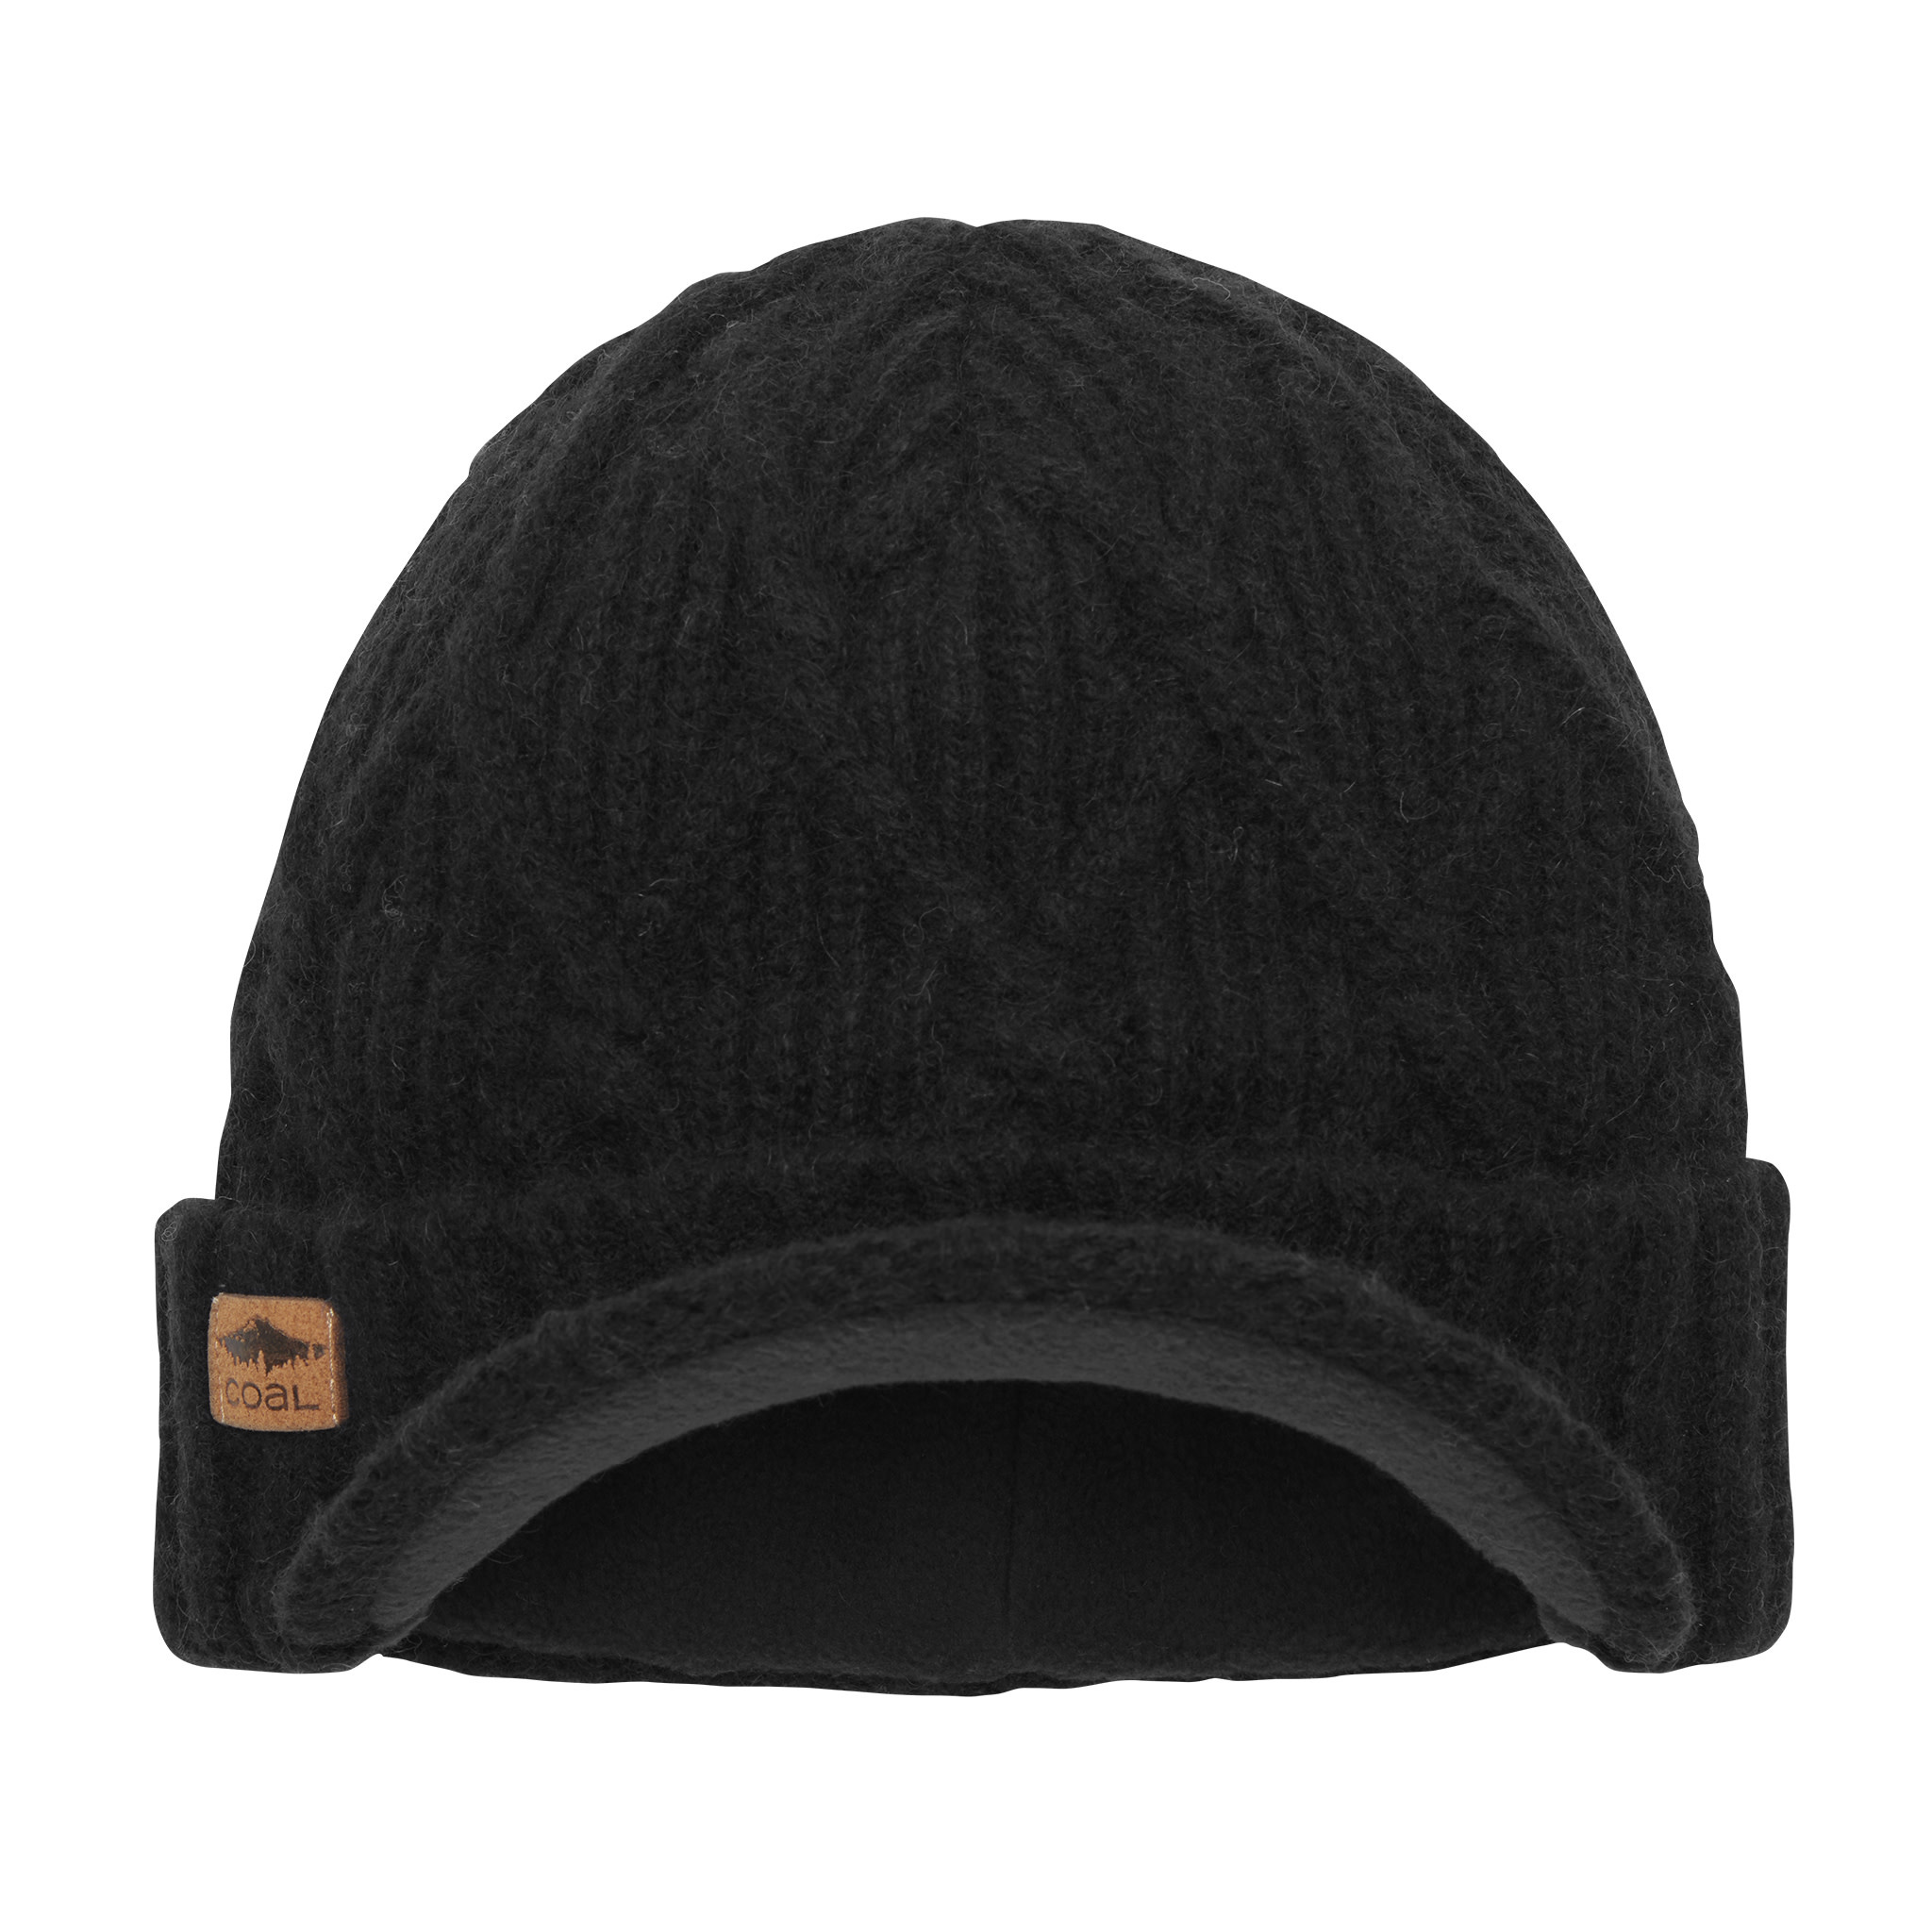 Coal Coal The Yukon Brim - Black